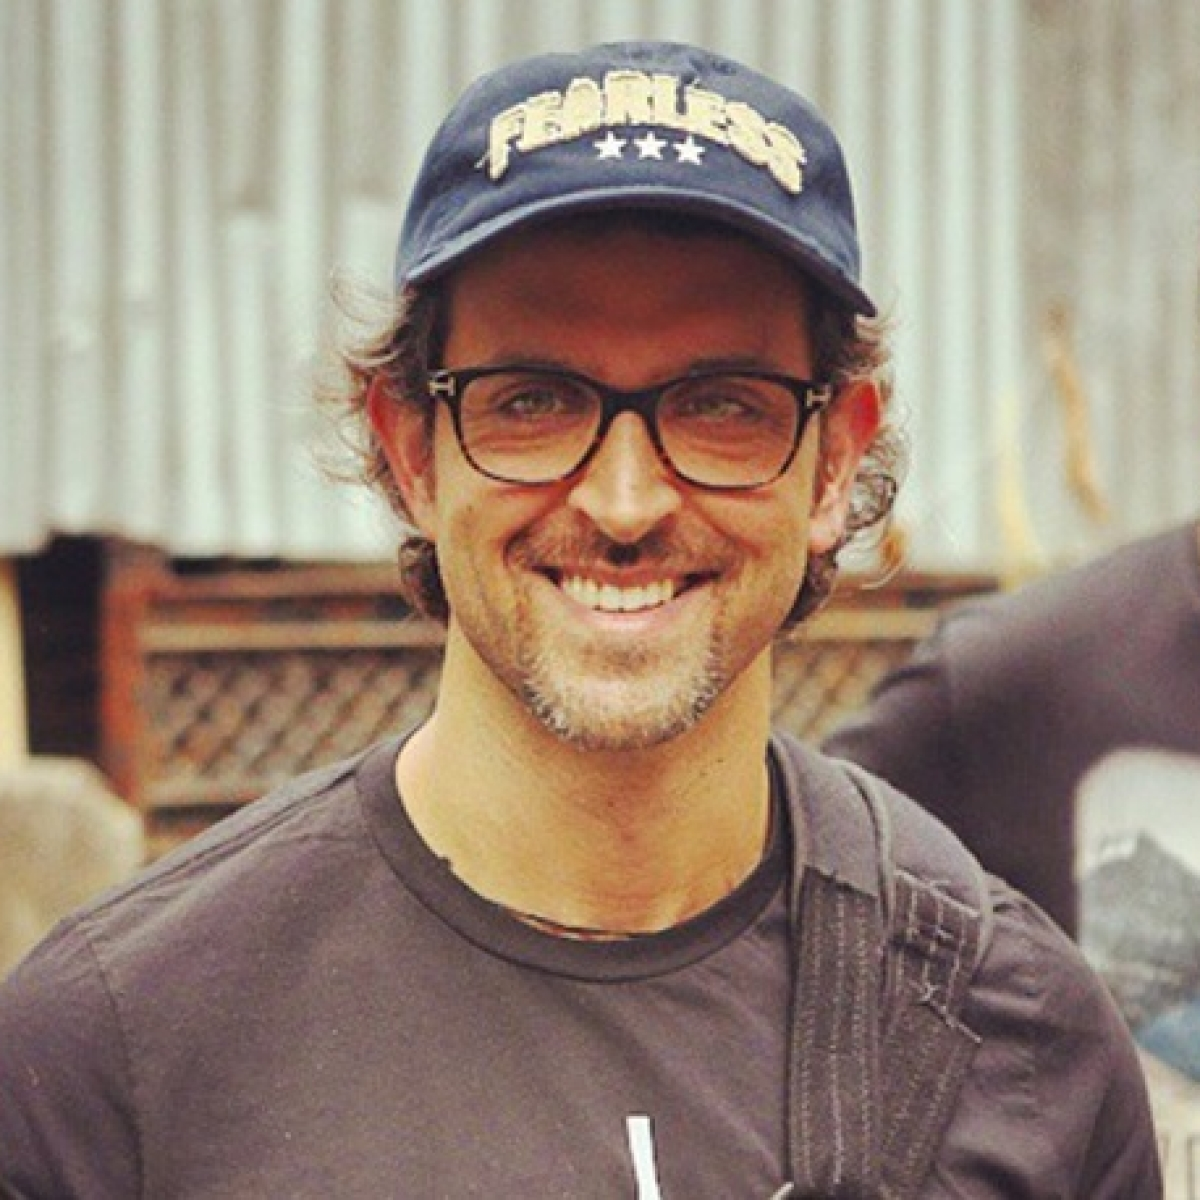 Hrithik just literally put his heart out for all of us - we are not kidding